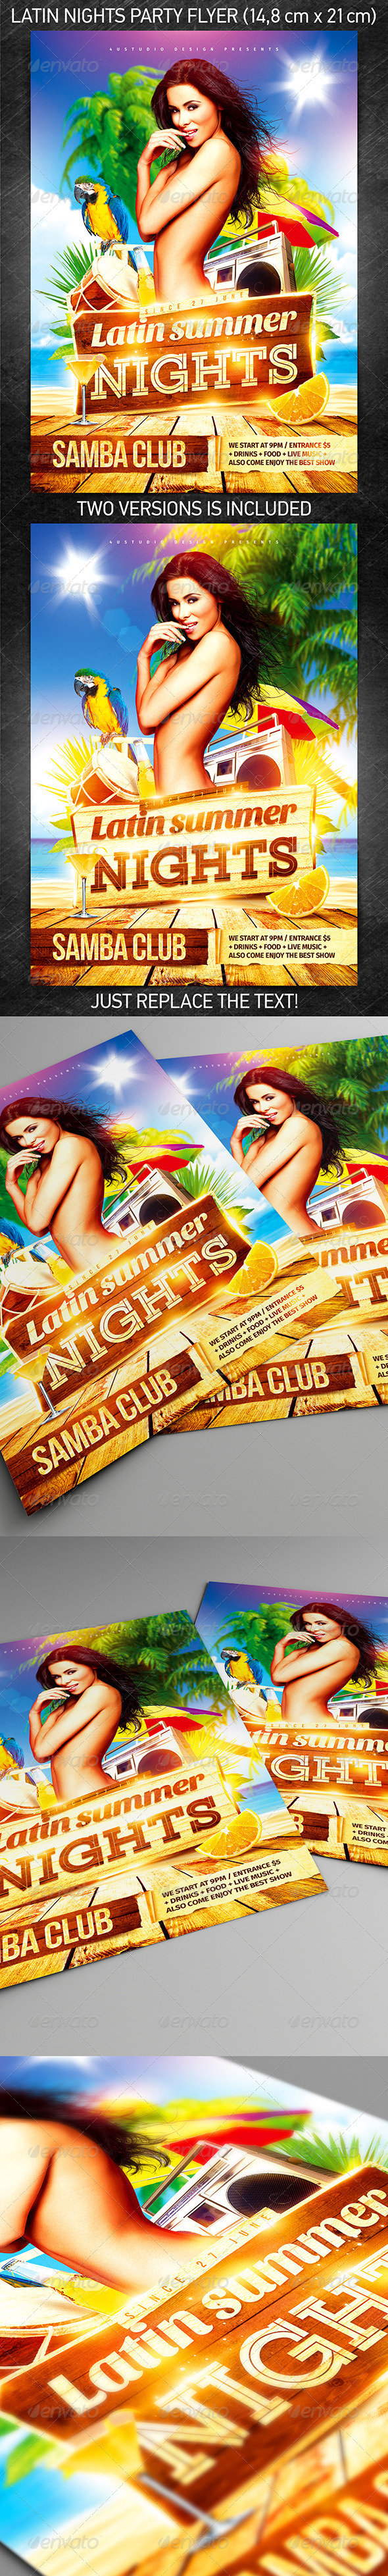 Latin Nights Party Flyer - Events Flyers